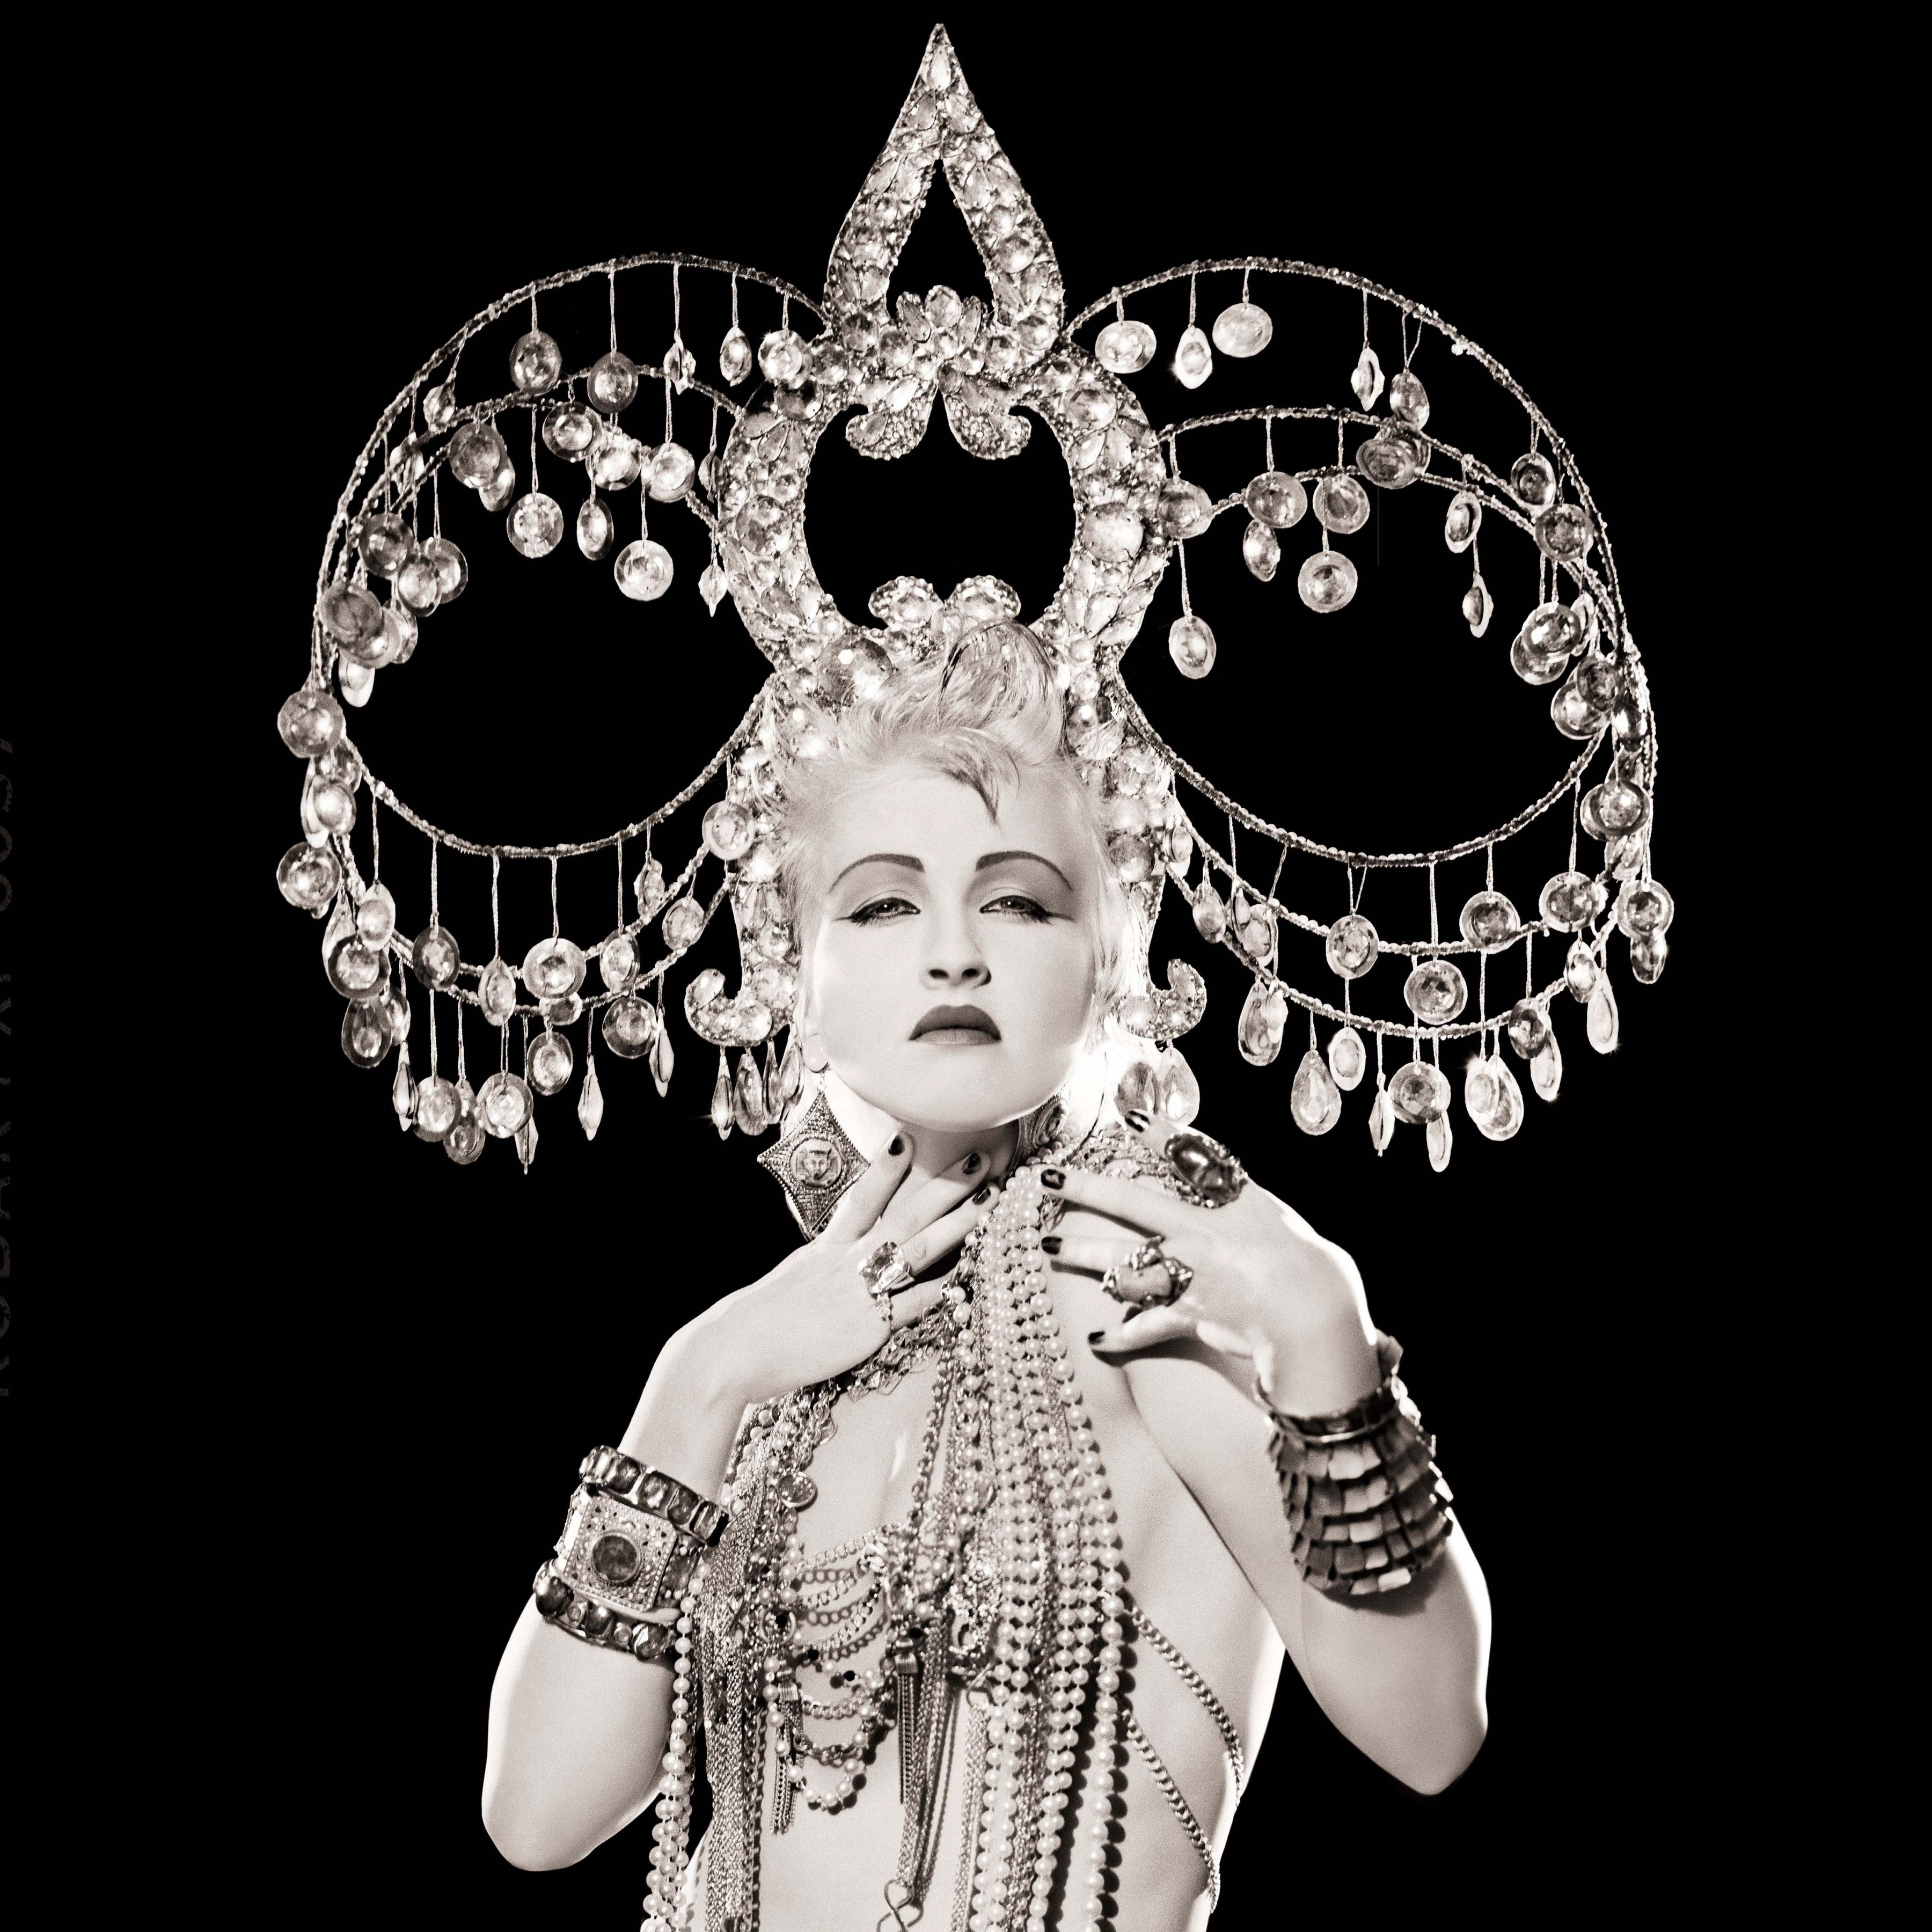 Cyndi Lauper, Headdress, Los Angeles, 1986, Archival Pigment Print